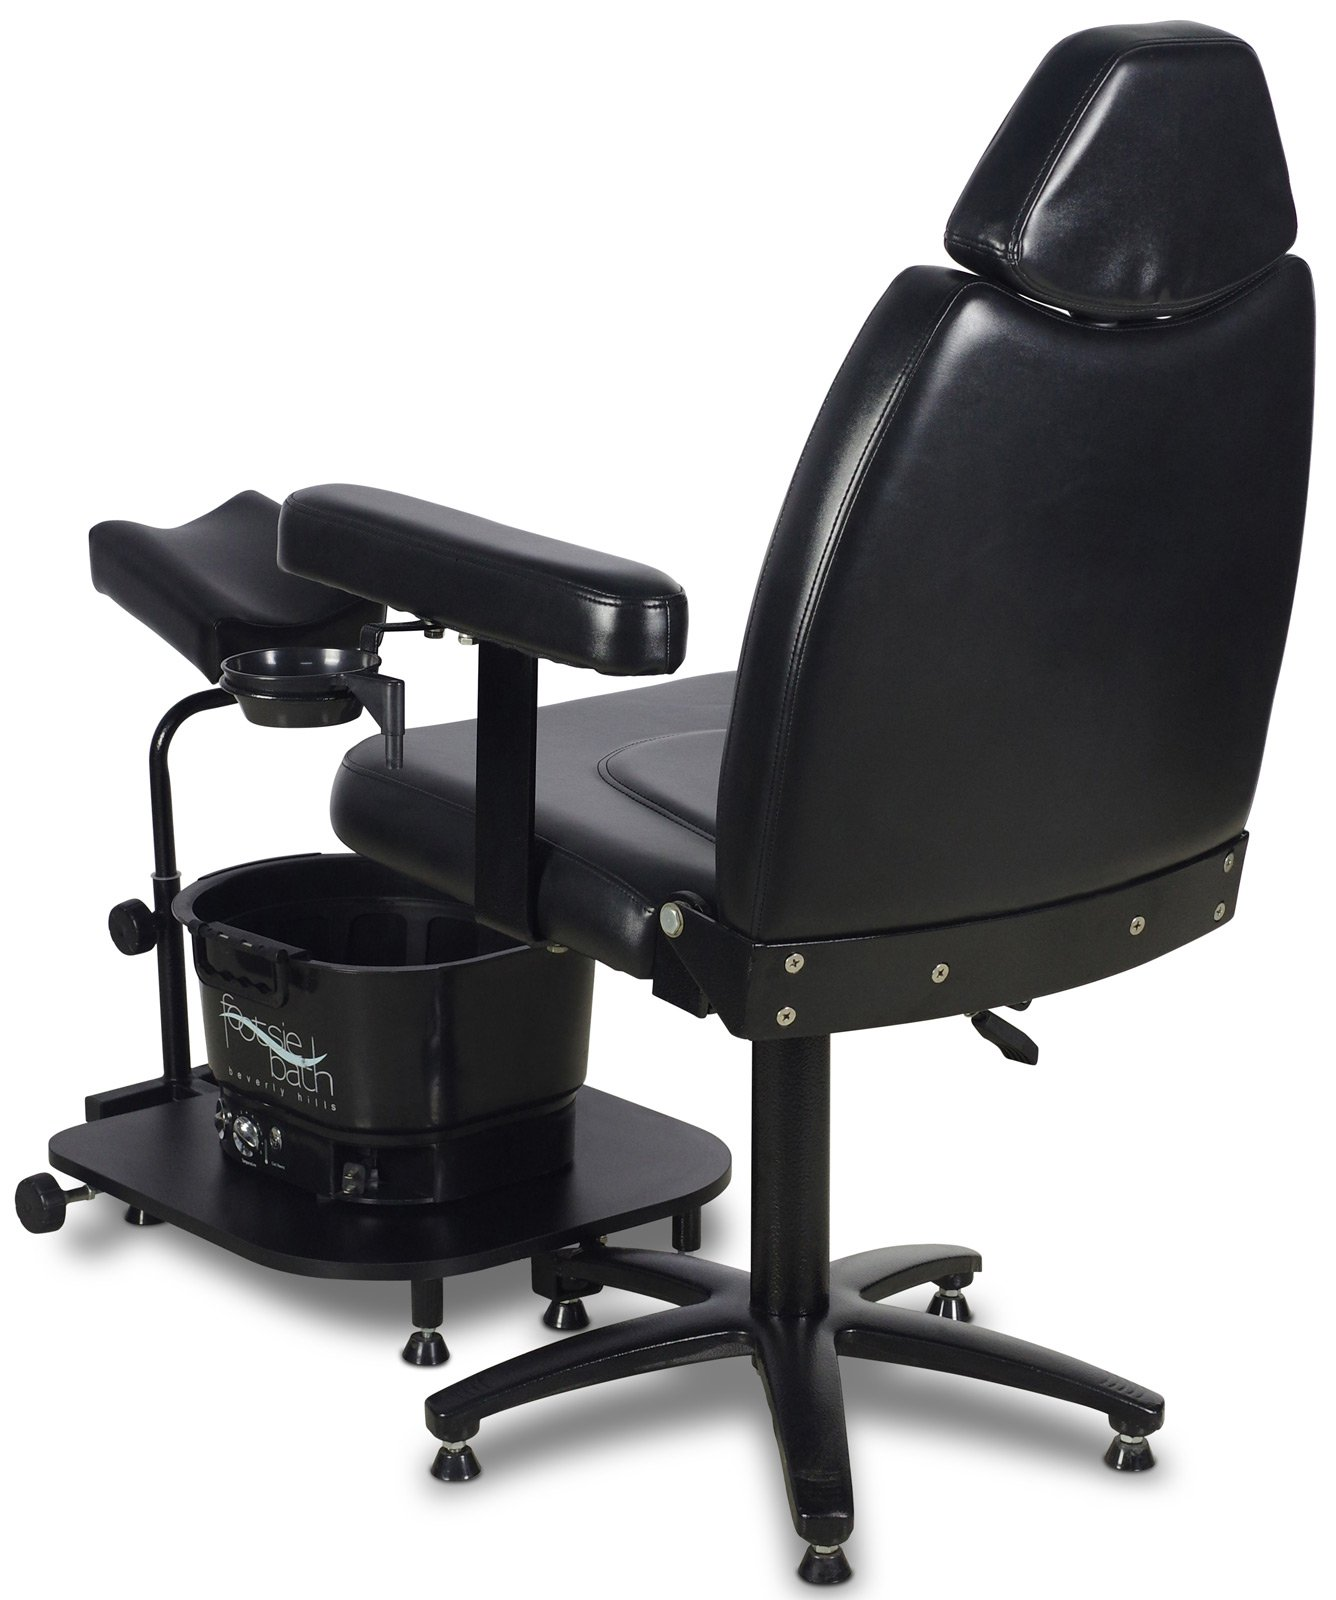 Icarus ''Zenith'' Black Pedicure Foot Spa Station Chair by Icarus (Image #3)